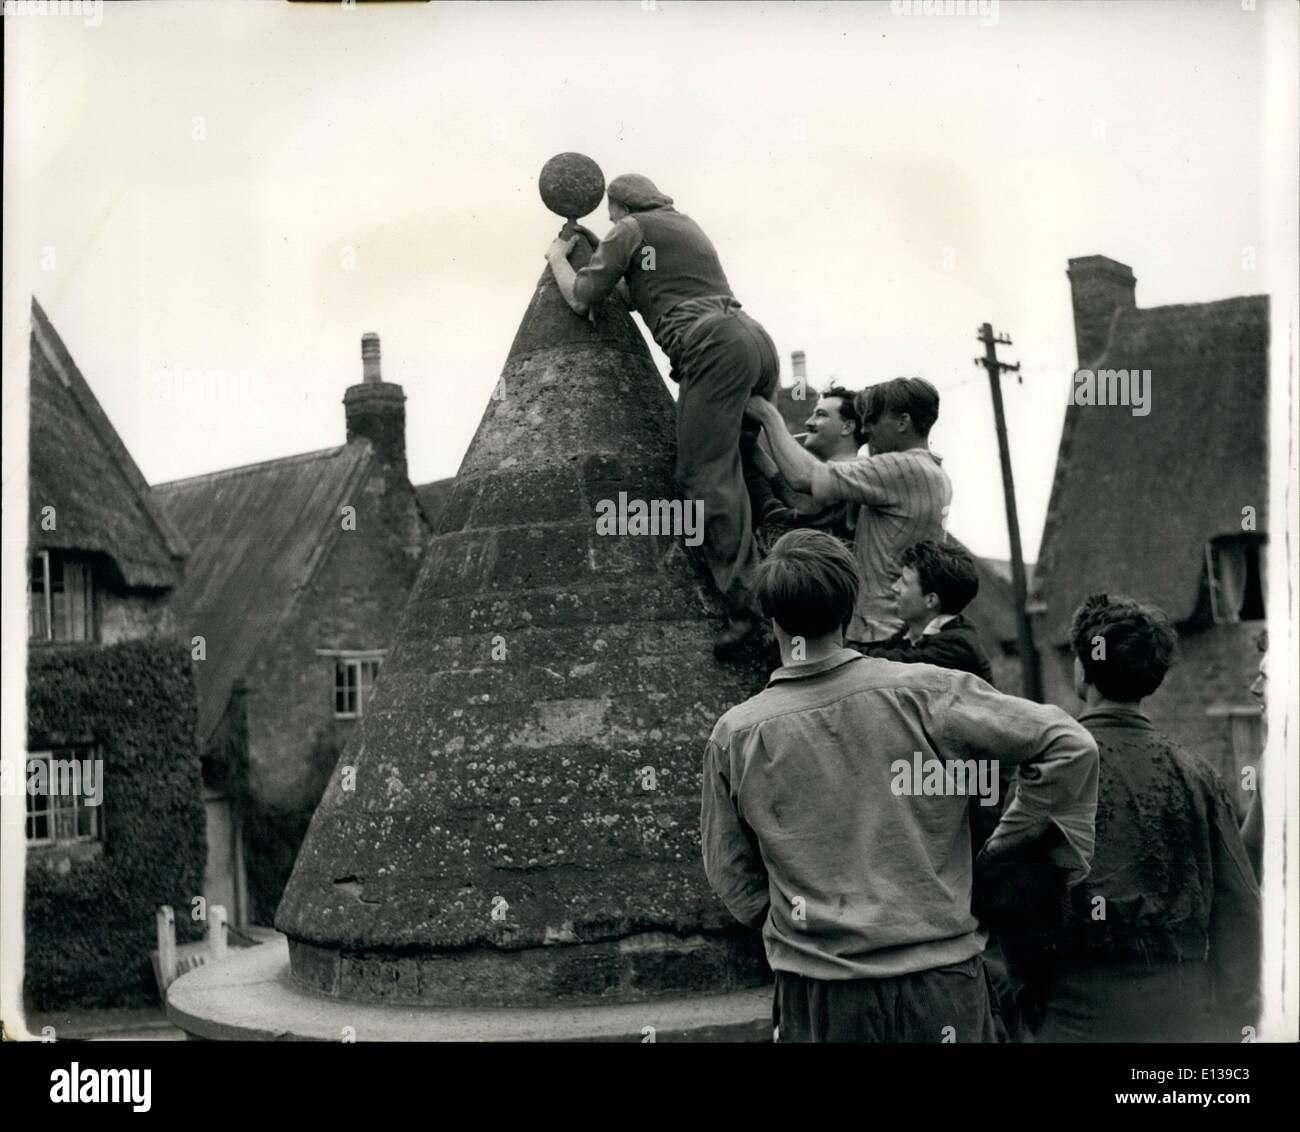 Feb. 29, 2012 - Climbing the Bulter Cross , which has stood on the village green for 300 years, is Ernest Driver, - Stock Image